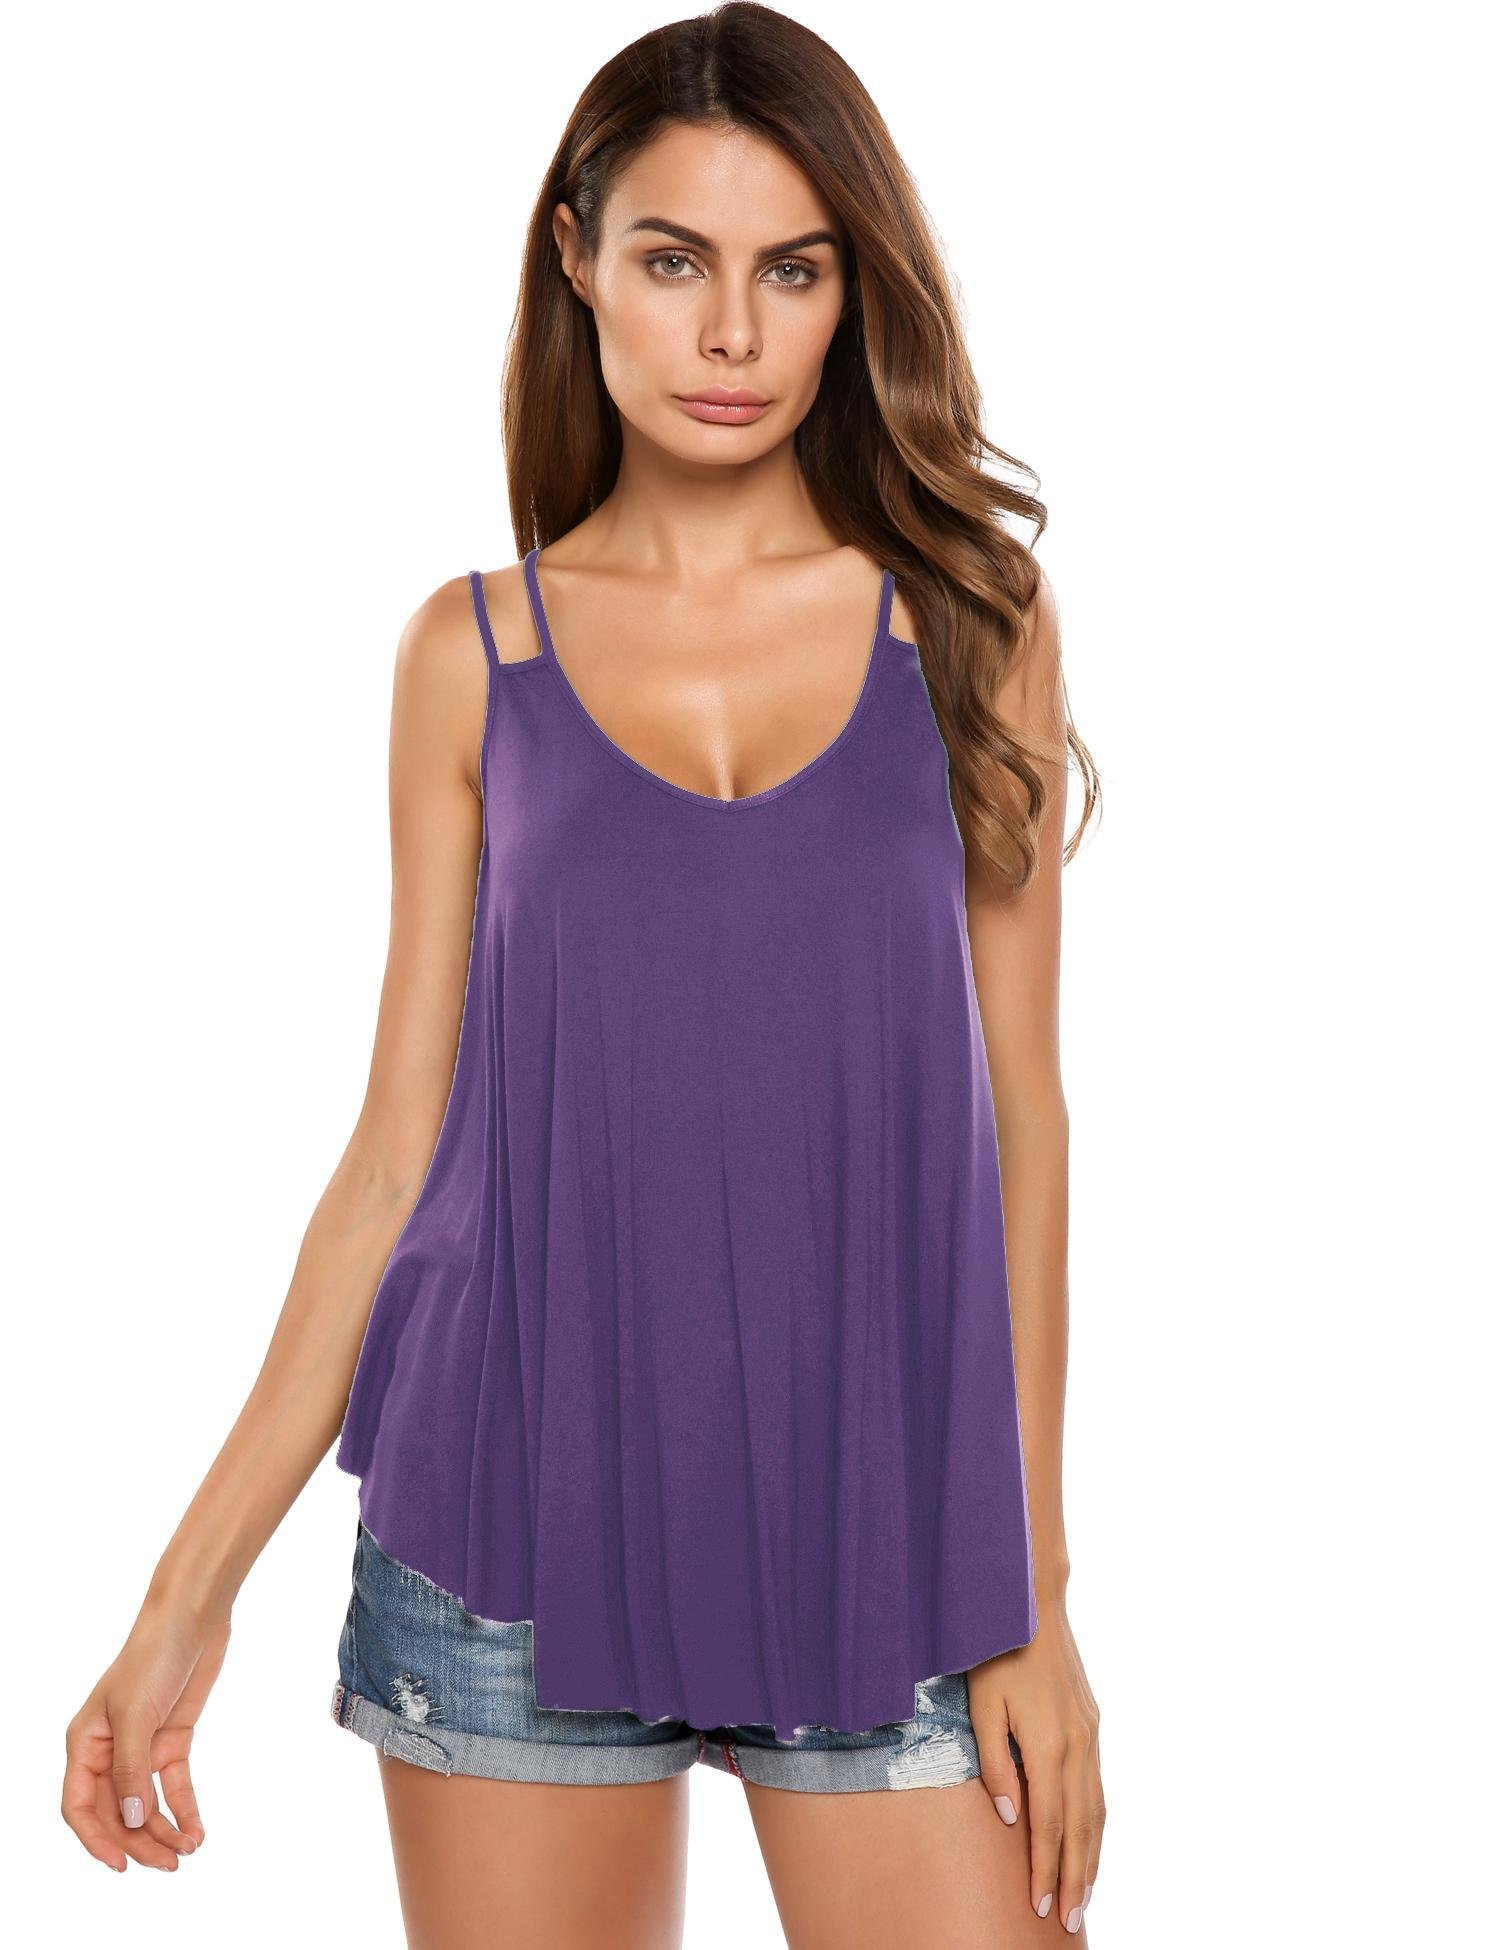 Instom Women's Casual Strap Cami Blouse Pleated Sleeveless Summer Flowy Tank Top